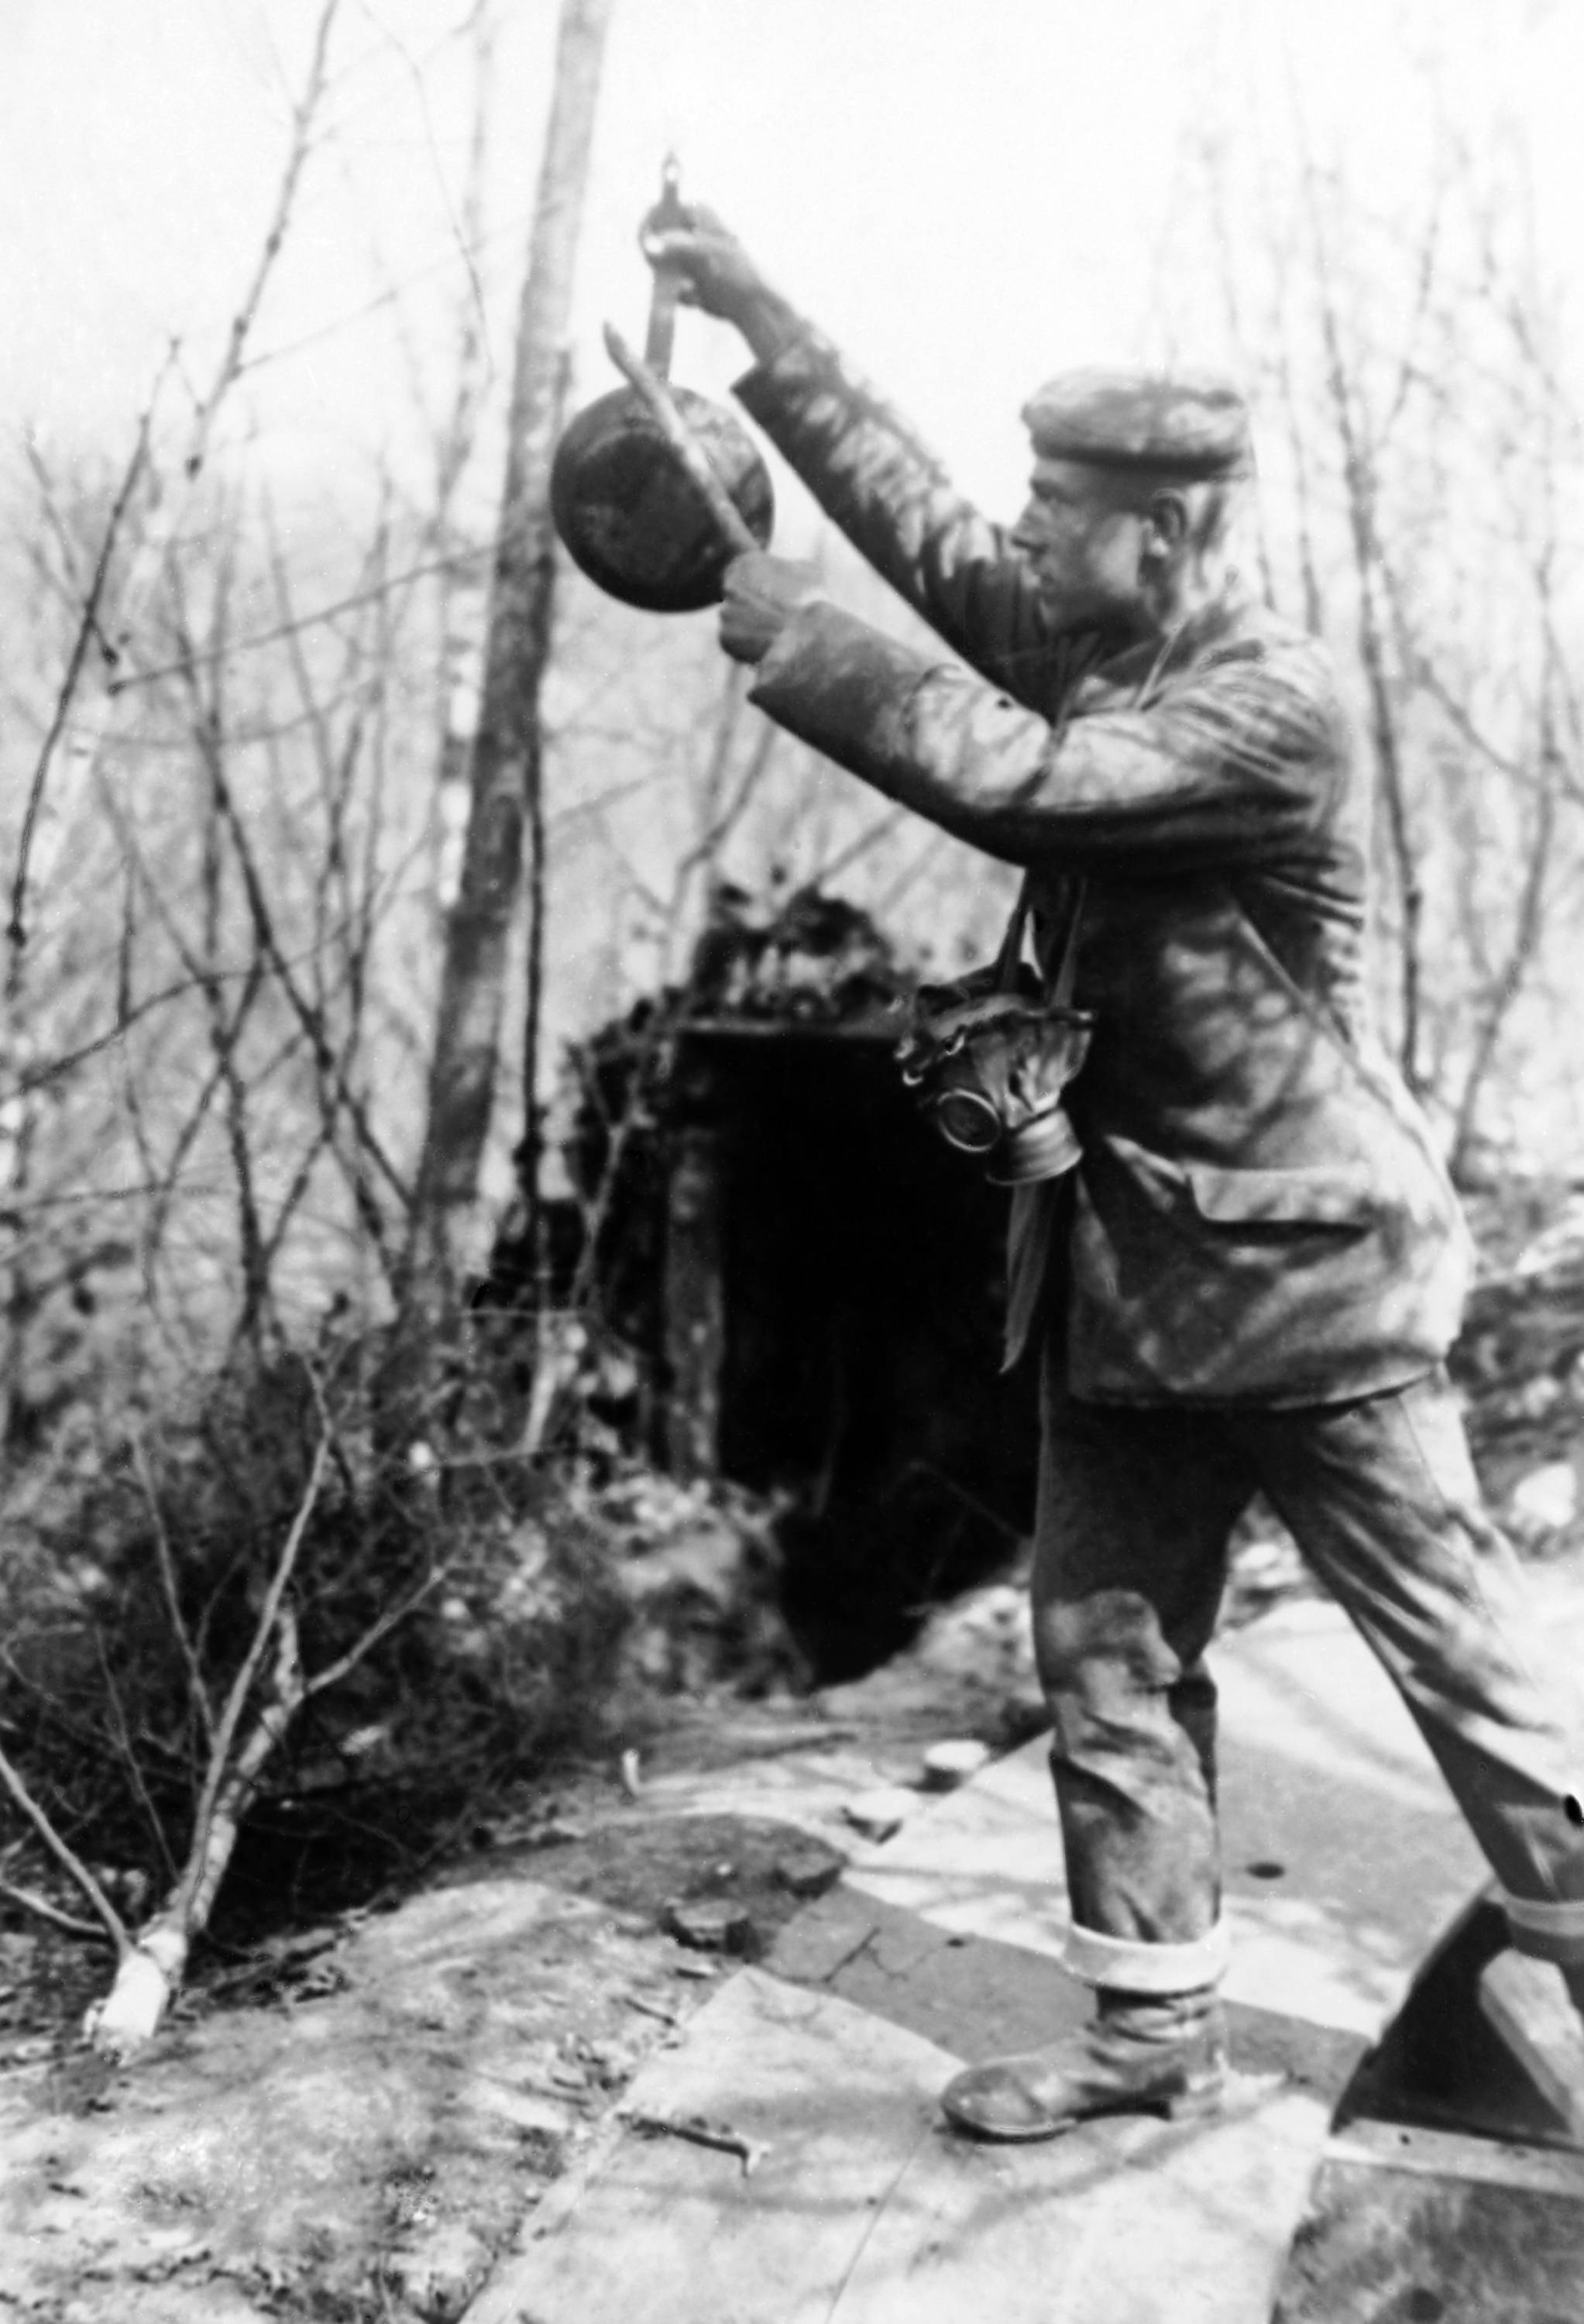 37 OF 100: In this undated file photo, an unidentified soldier, wearing a gas mask around his neck, bangs on a frying pan as a gas warning on the field near Reims, France.